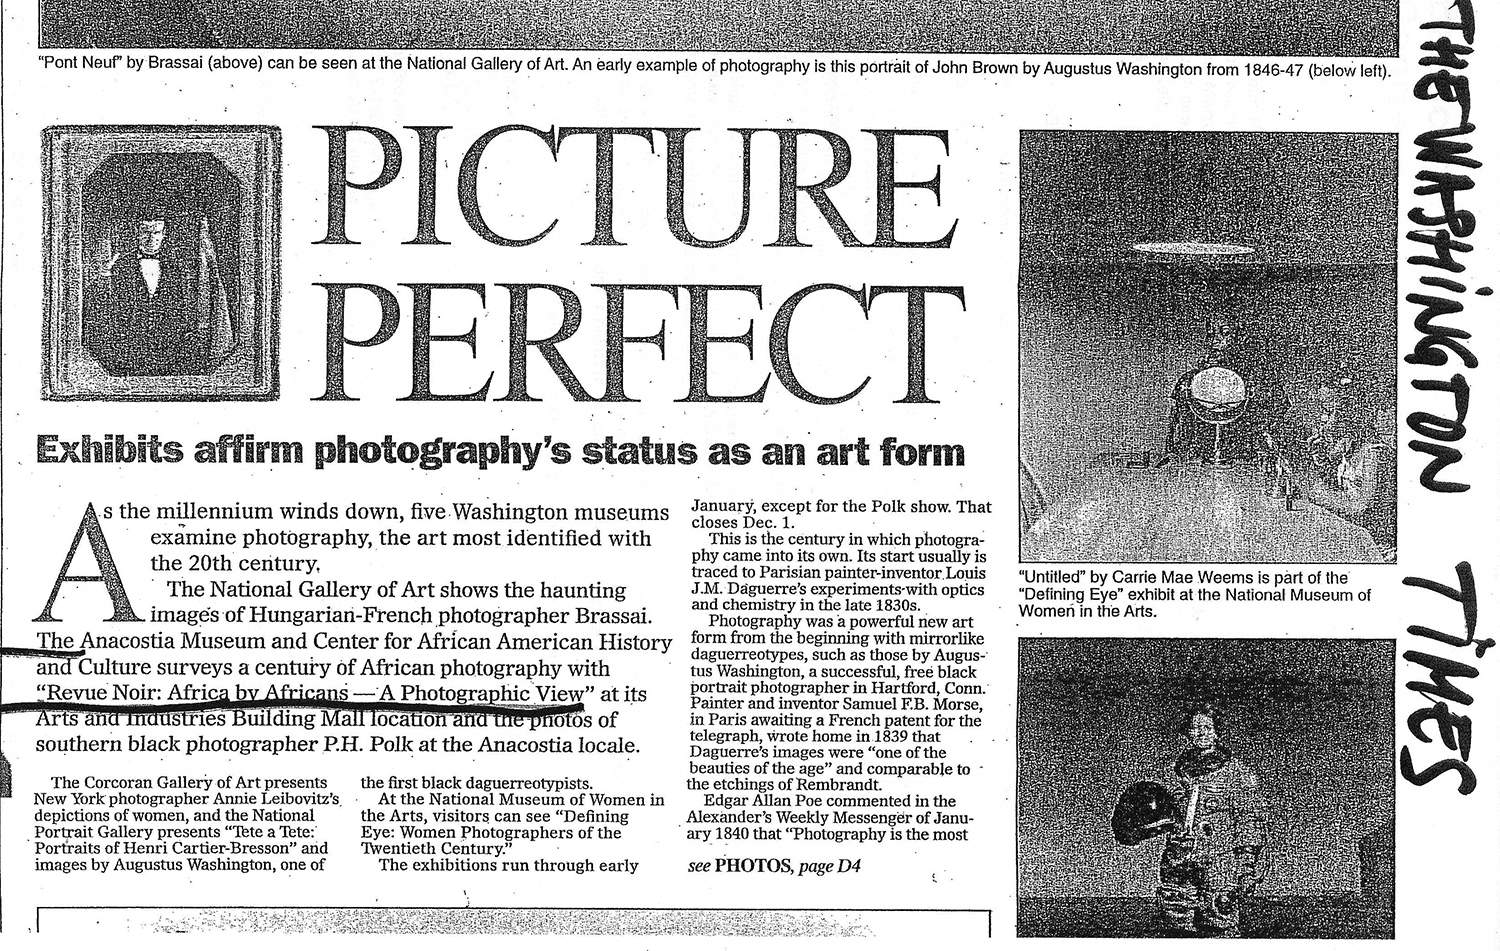 REVUE NOIRE revue de presse: Washington Times jan 2011. Picture perfect, Africa by Africans African photo exhibition in Anacostia Museum